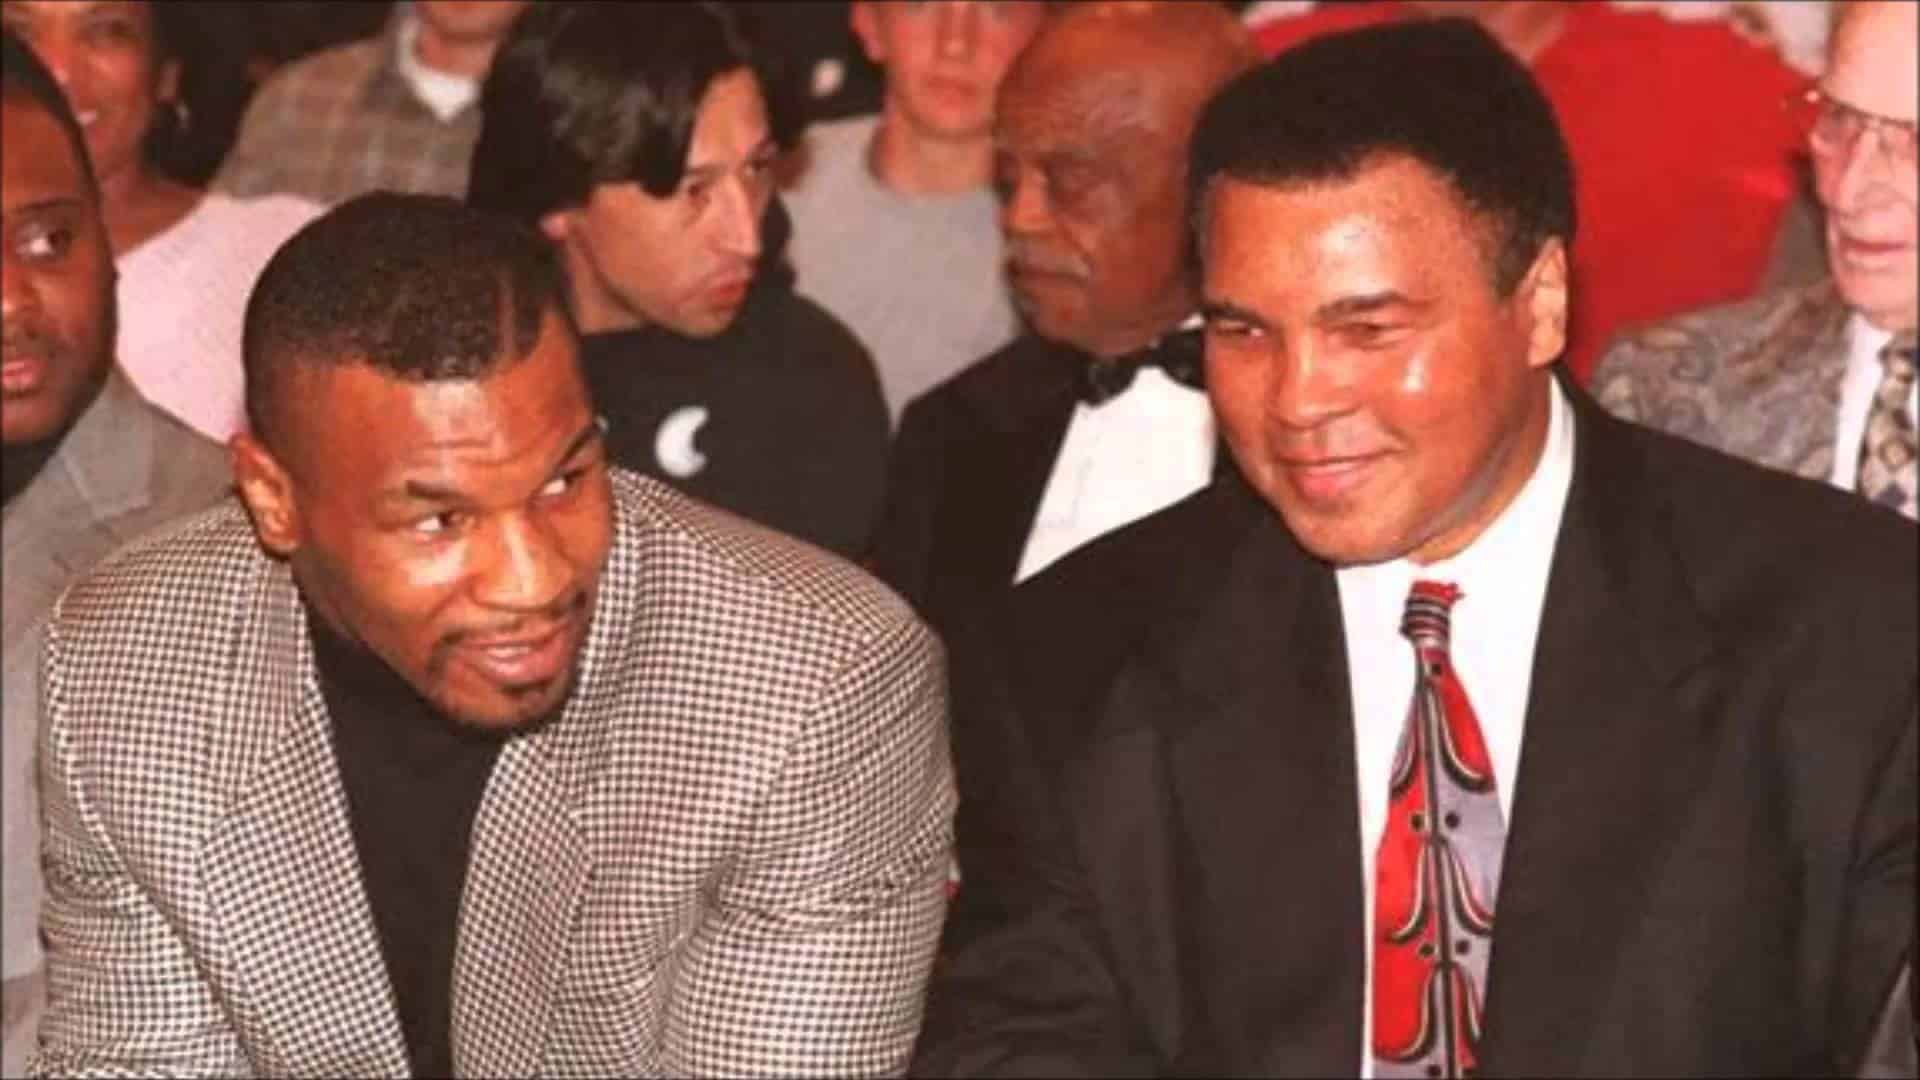 """TIL that the morning after Muhammad Ali lost in a fight against Larry Holmes, a 14 year old Mike Tyson promised him that when he """"got big"""" he would take down Larry Holmes for him. 6 years later, Tyson fought against Larry Holmes and won."""